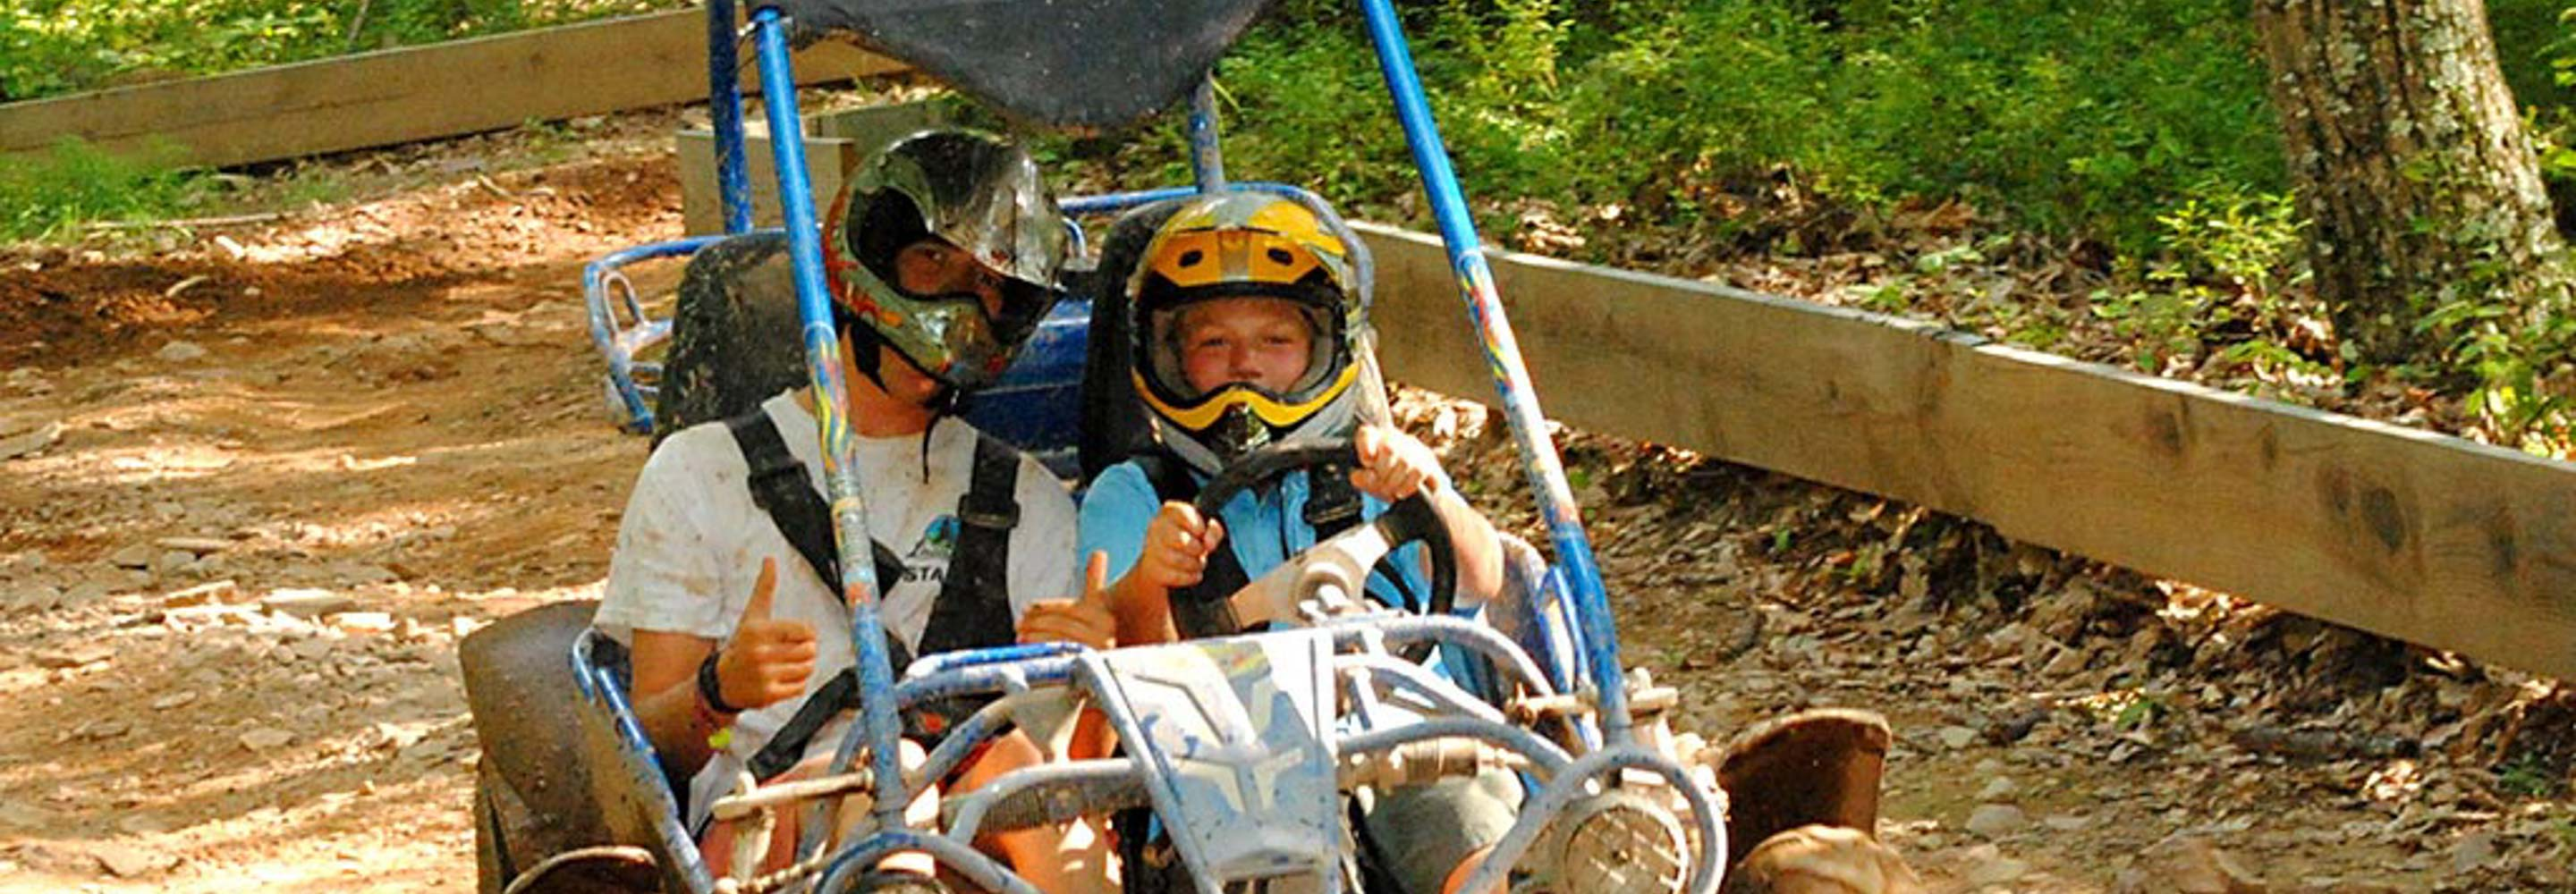 camper and staff riding go kart